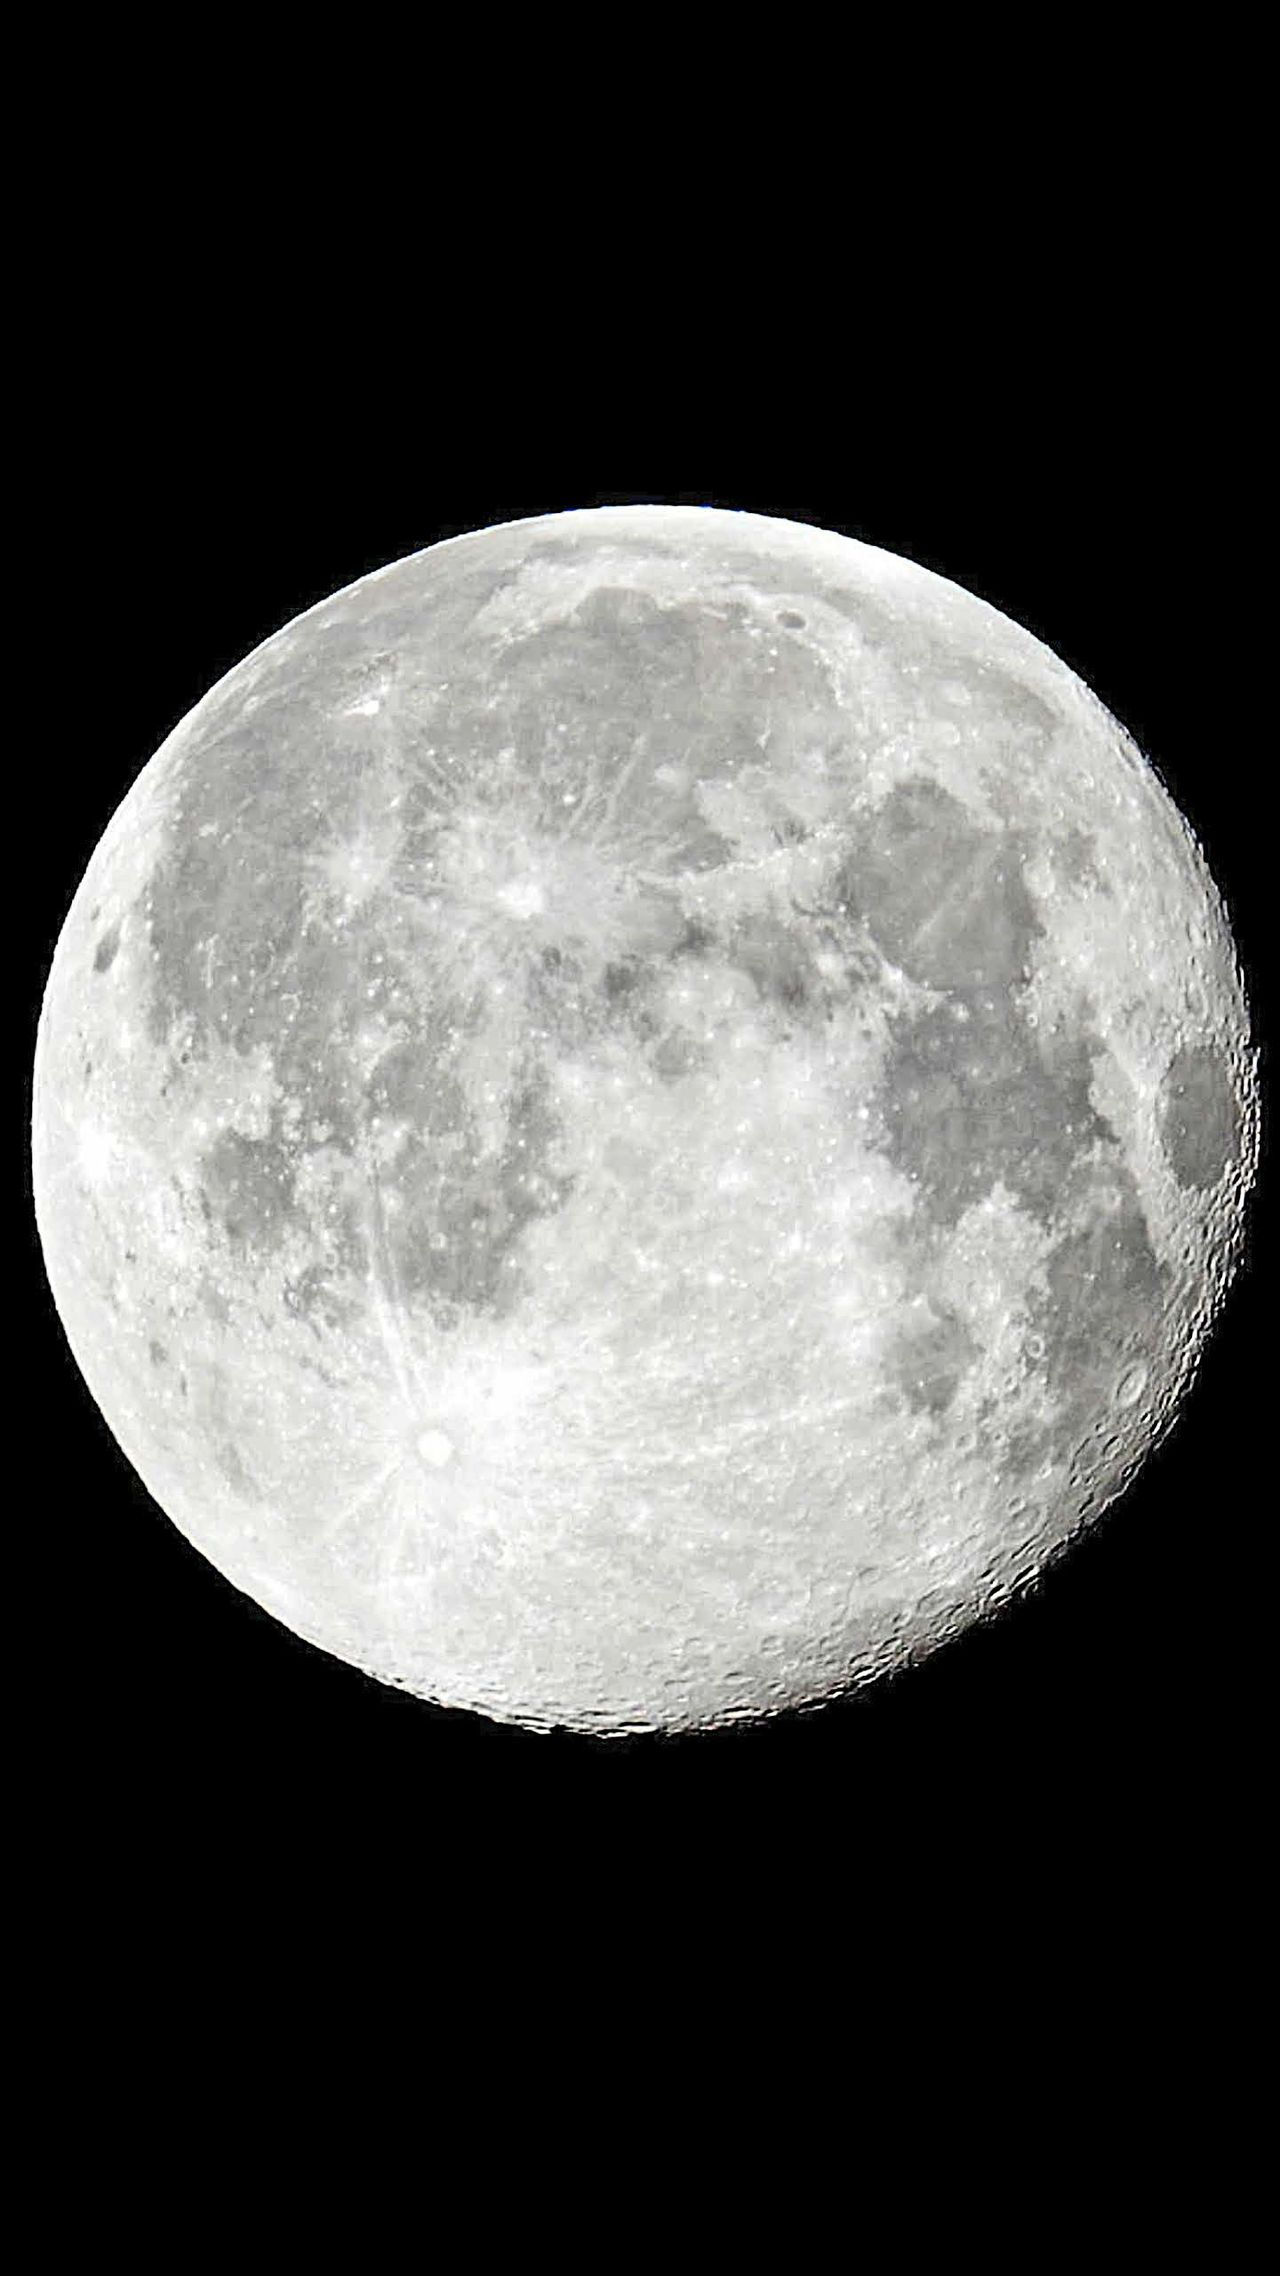 Man in the moon Moon Night Astronomy Planetary Moon Circle Moon Surface Space Moonporn Moonlight Moonshot Moon_lovers Moon_of_the_day Moonset MoonScape Moonlight ♥ Moonbeauty Moonlovers